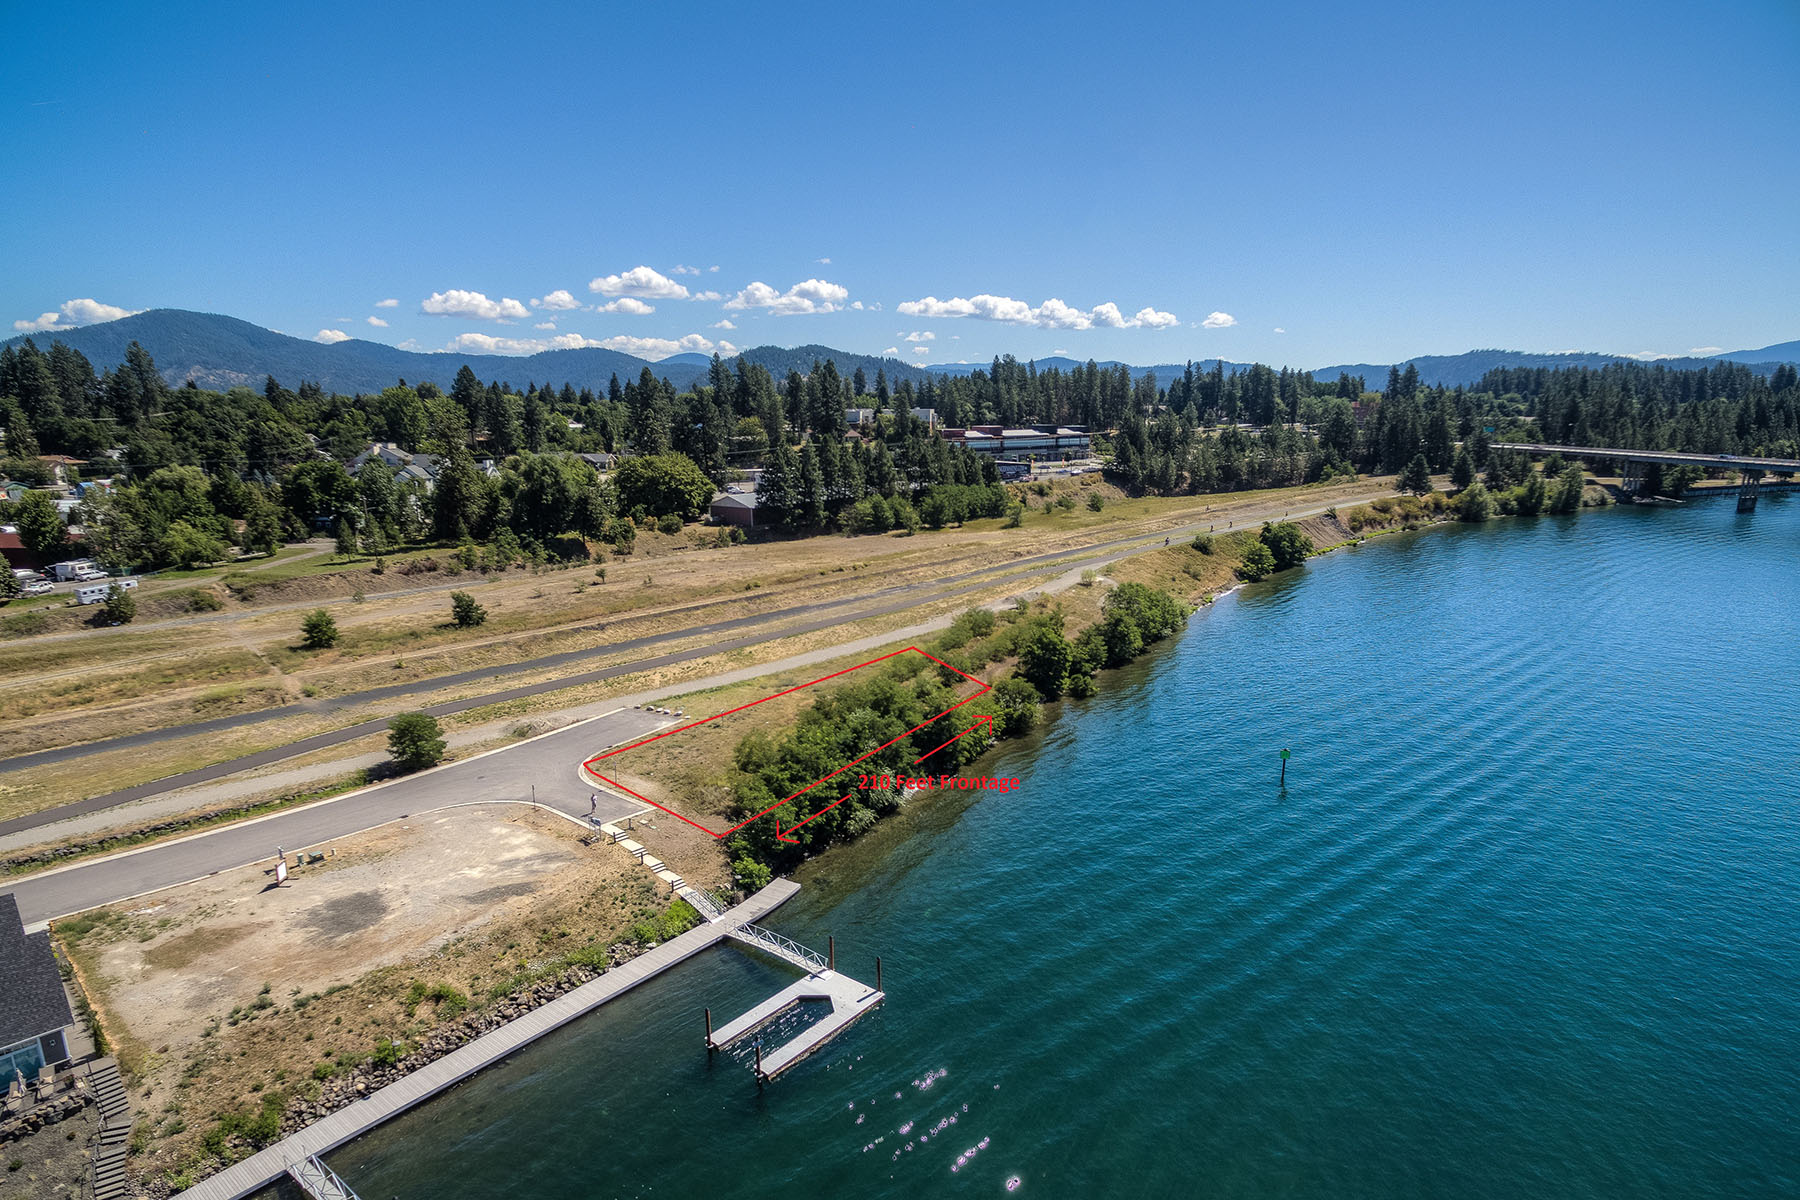 Terreno por un Venta en Stunning MultiFamily Waterfront Land L1 Blk1 Bellerive 6th Addition Coeur D Alene, Idaho, 83814 Estados Unidos